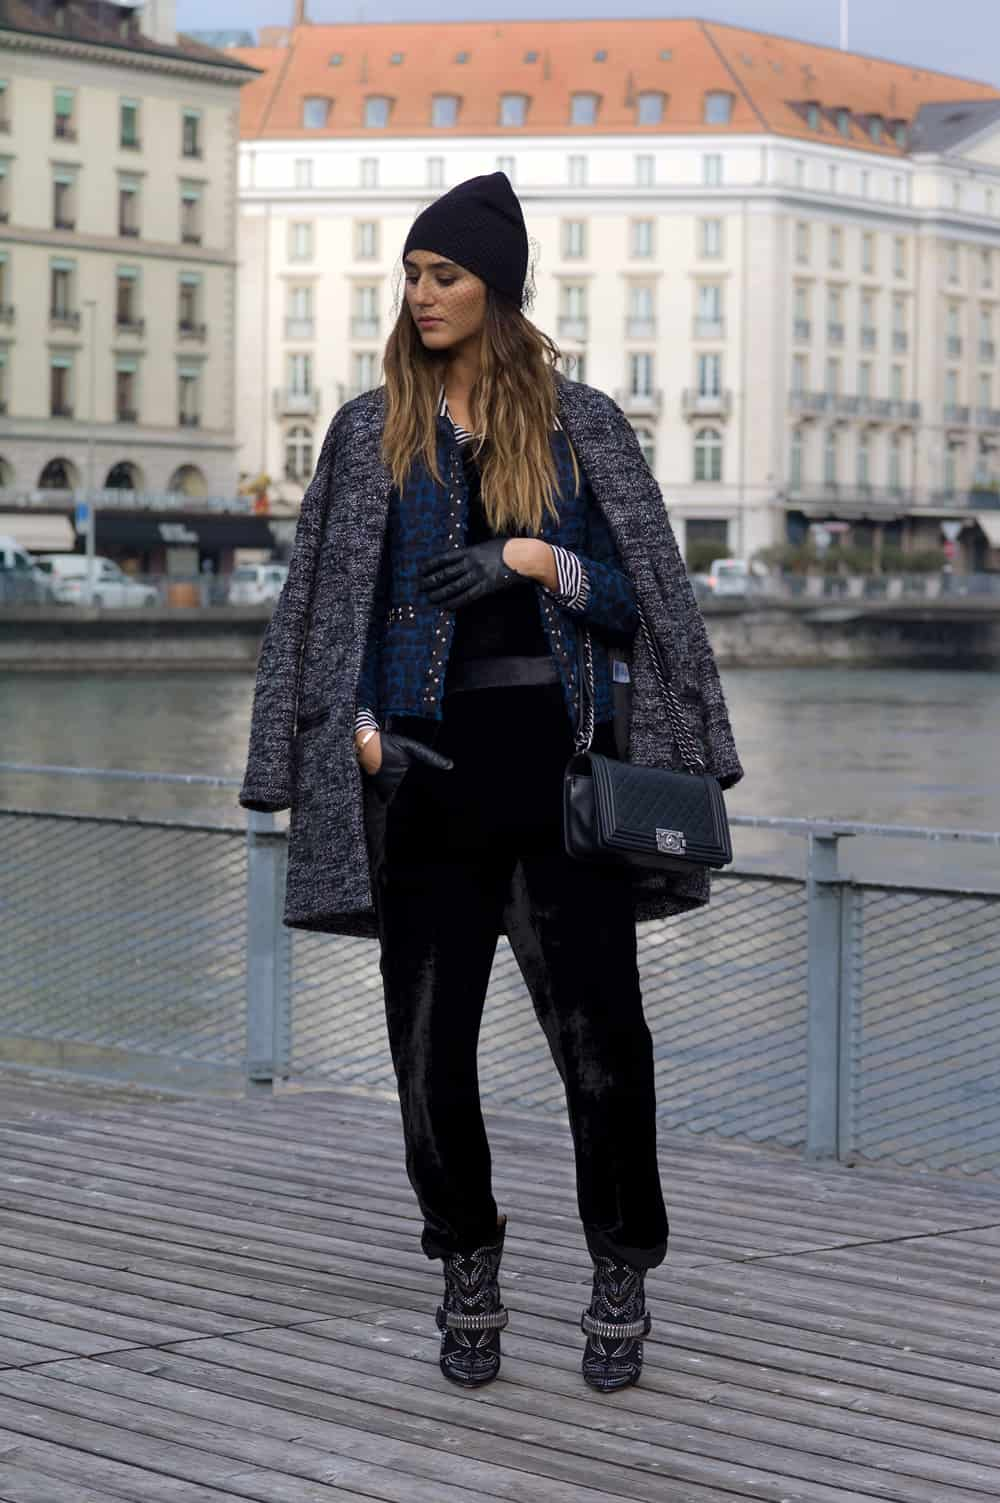 Veiled Beanies  HOT Or NOT  – The Fashion Tag Blog 79a88341d219